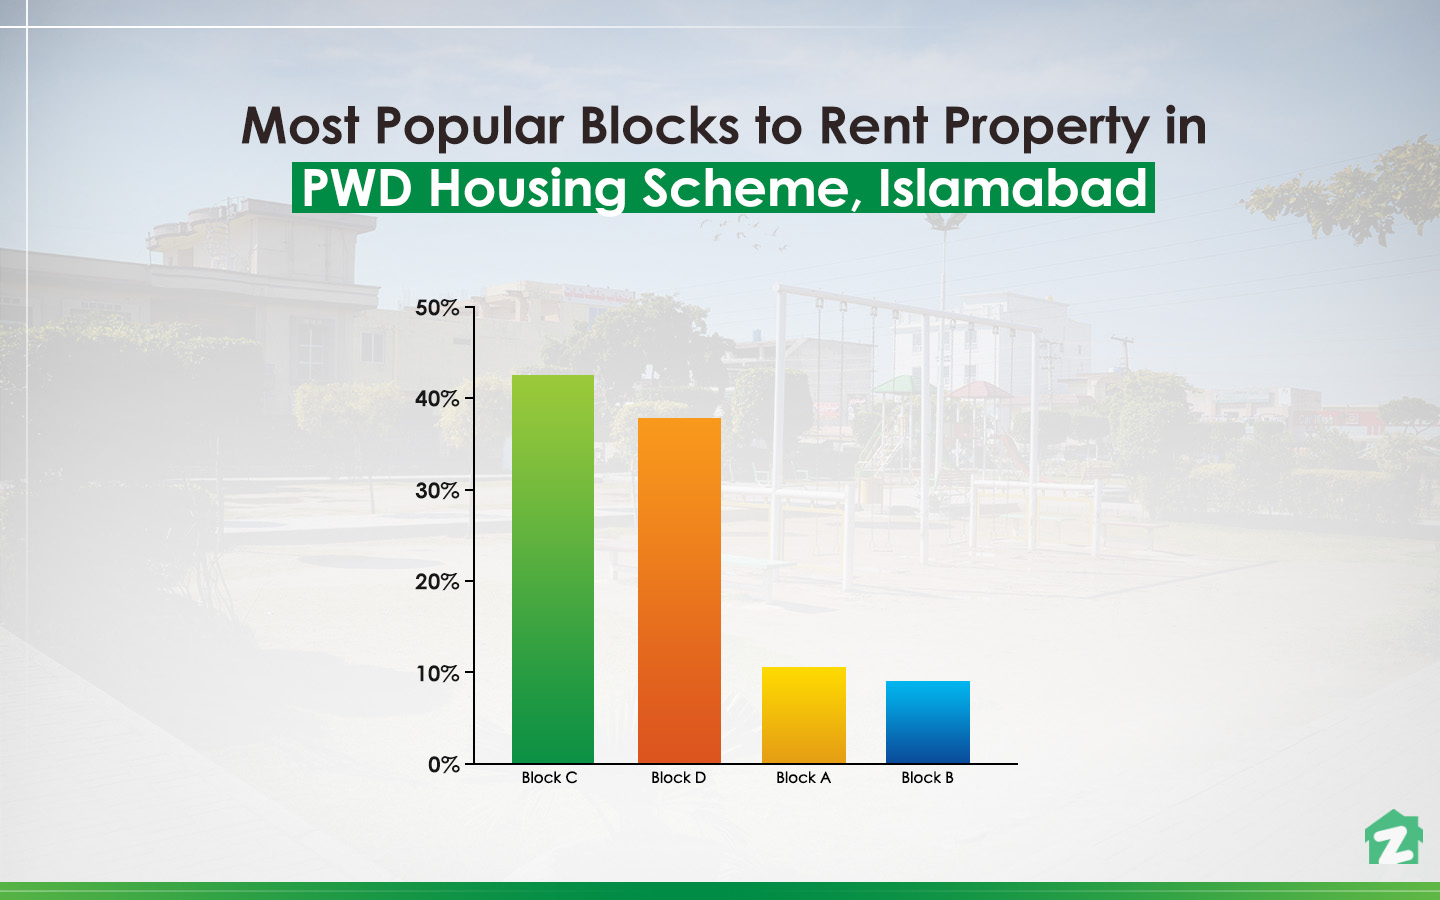 Popular blocks for renting property in PWD Housing Scheme, Islamabad